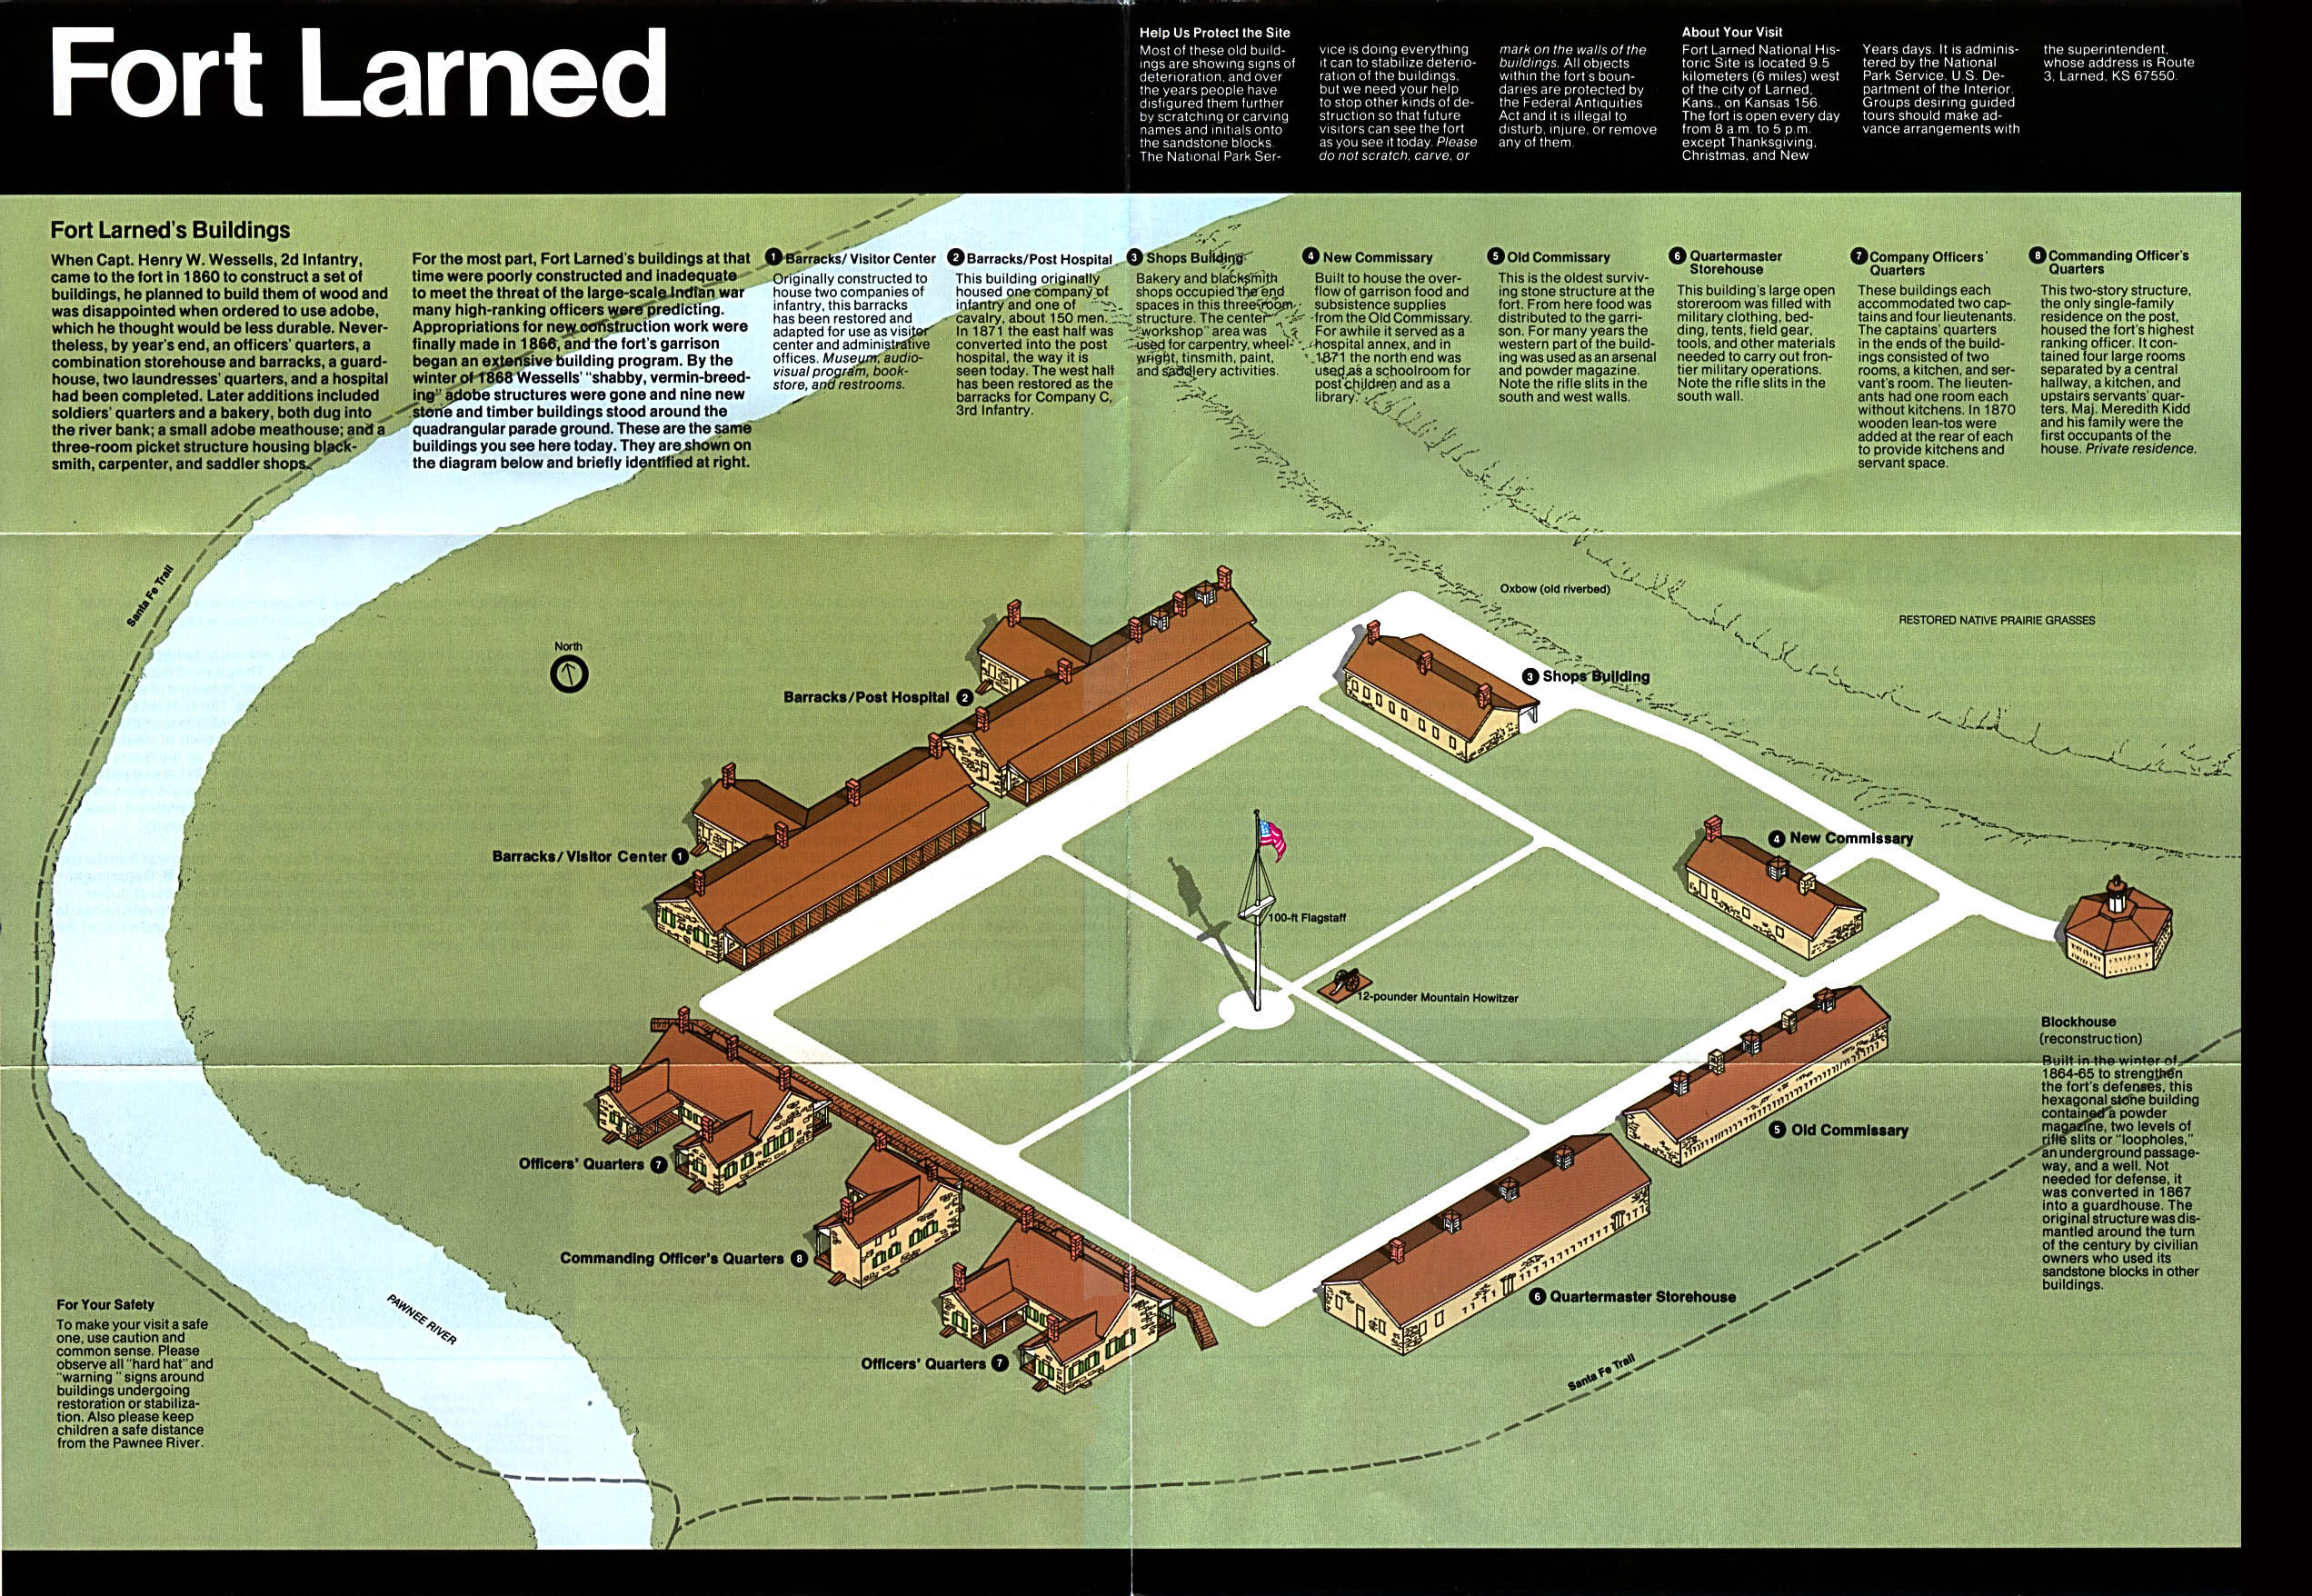 Maps of United States National Parks, Monuments and Historic Sites Fort Larned National Historic Site [Kansas] (Schematic Map) 1994 (893K)